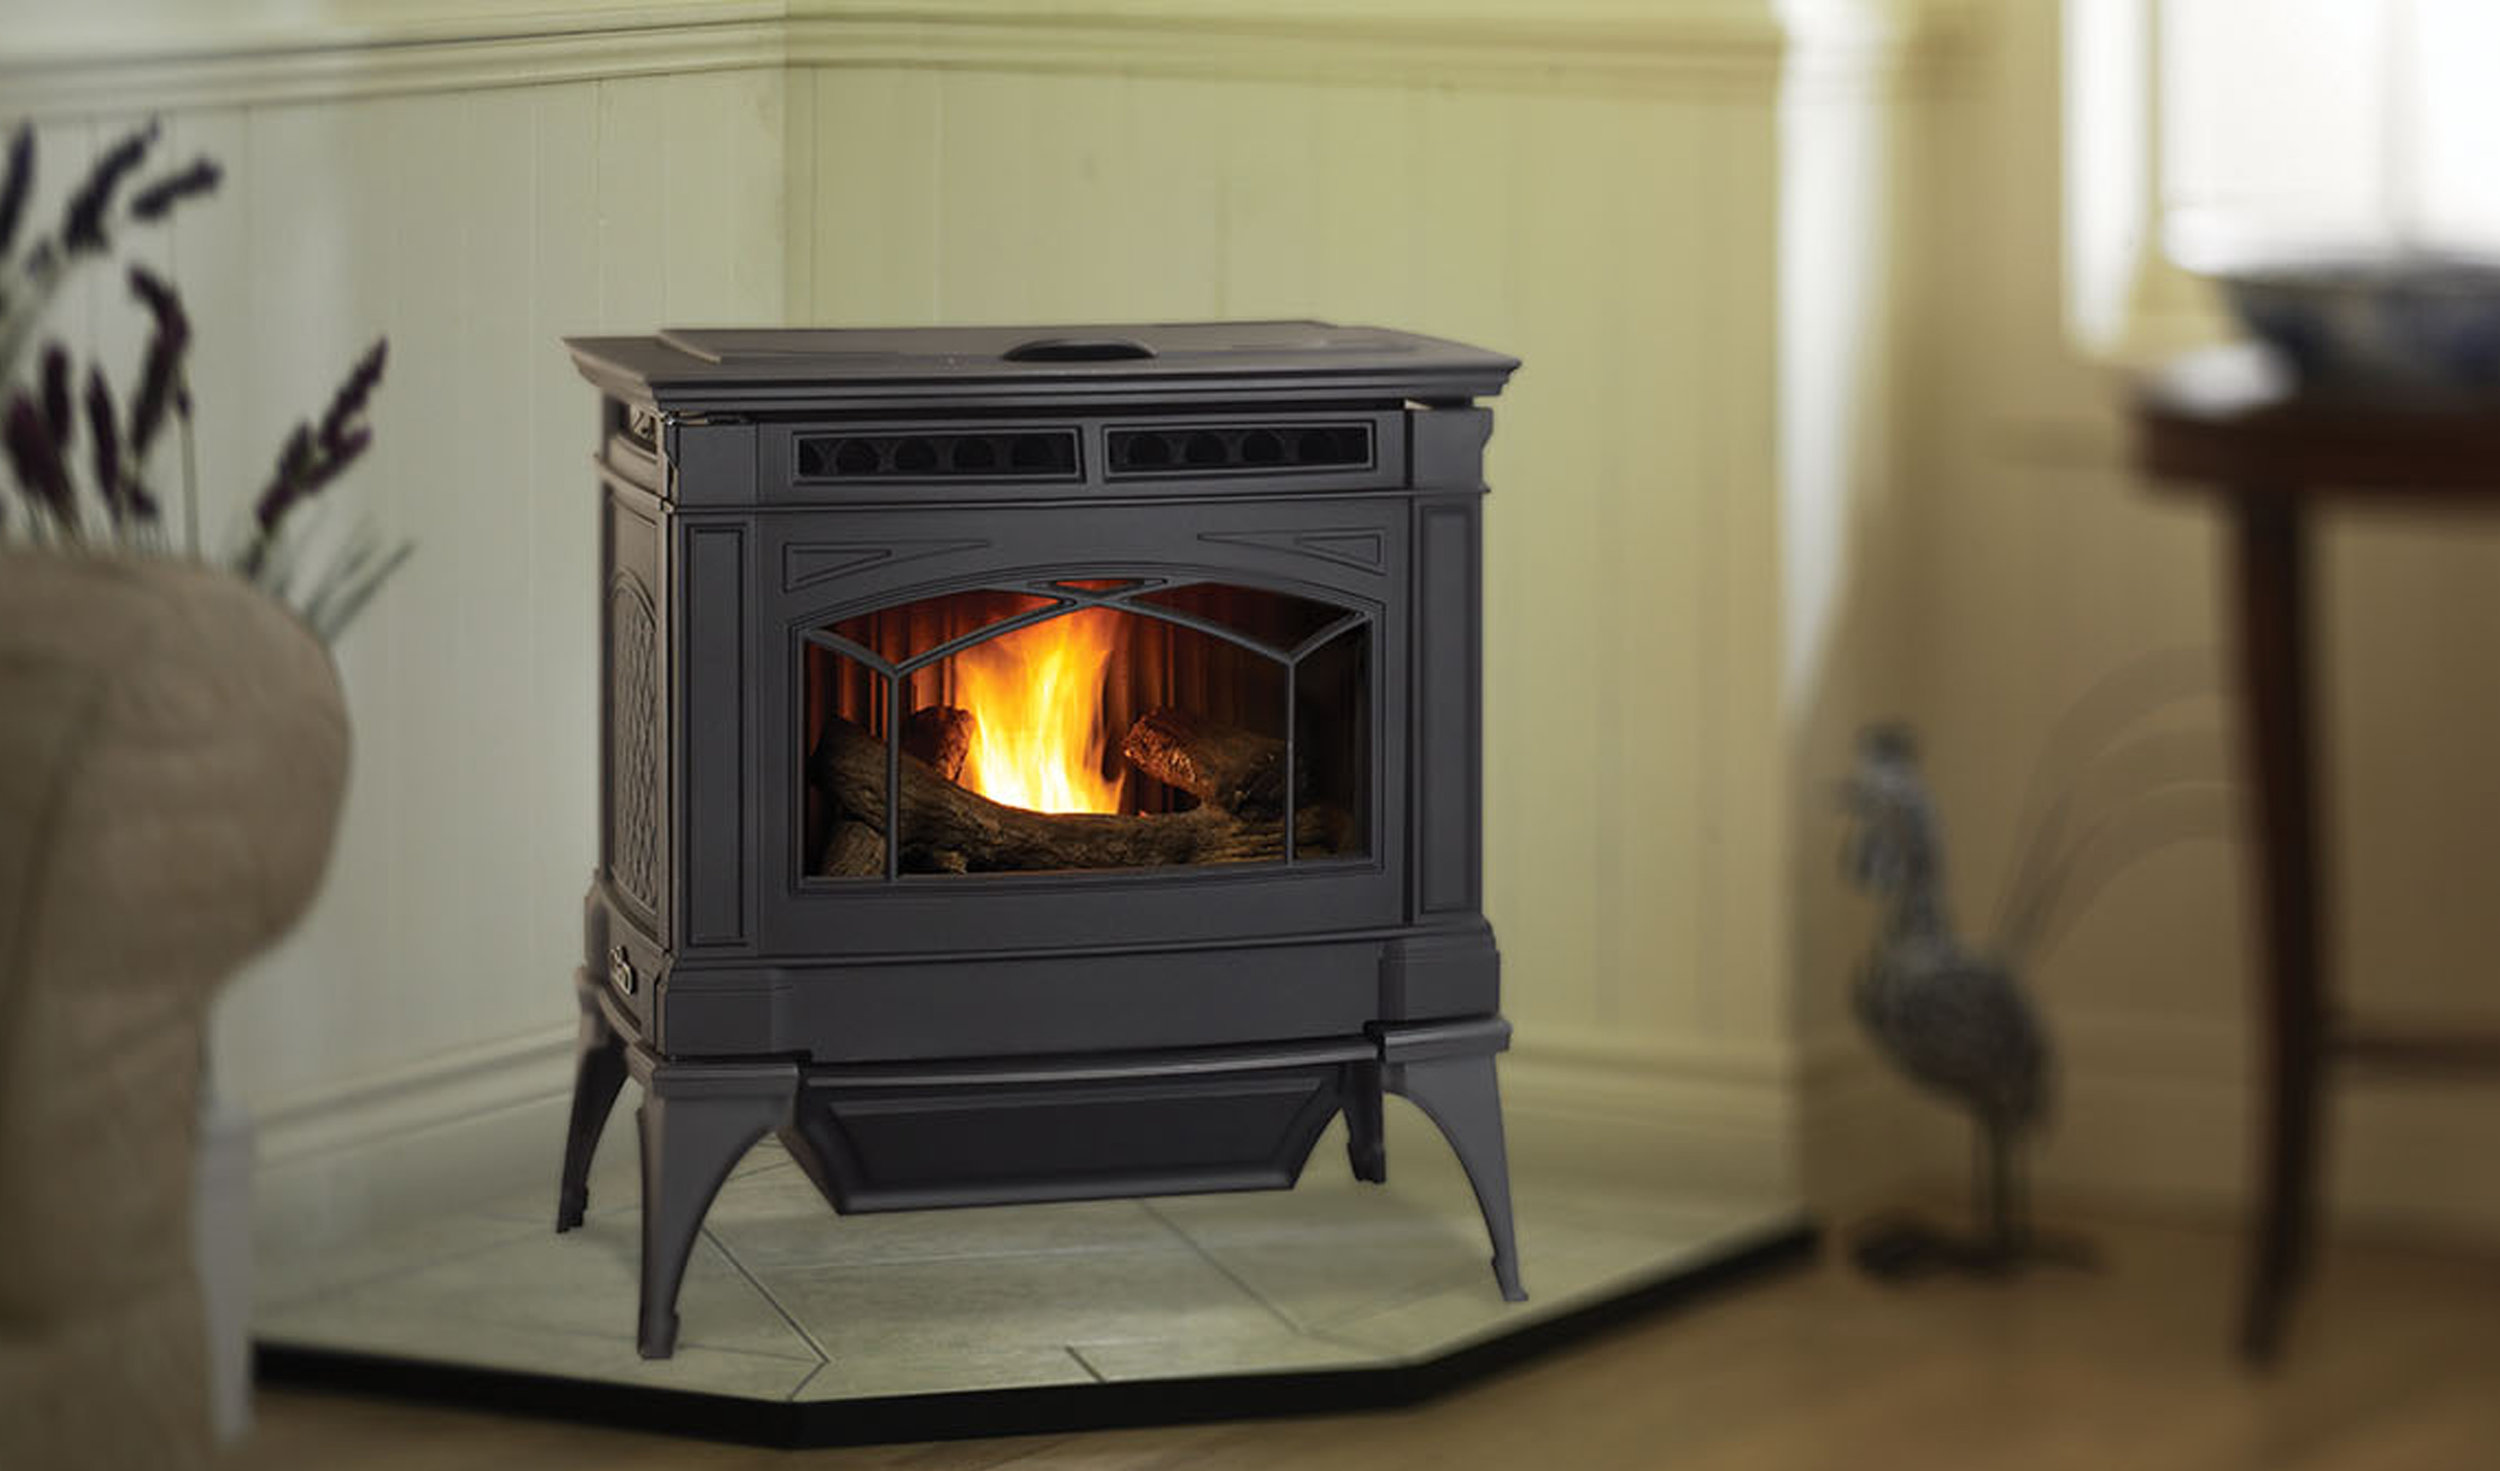 Napoleon-Fireplaces-Seattle-stove3.jpg